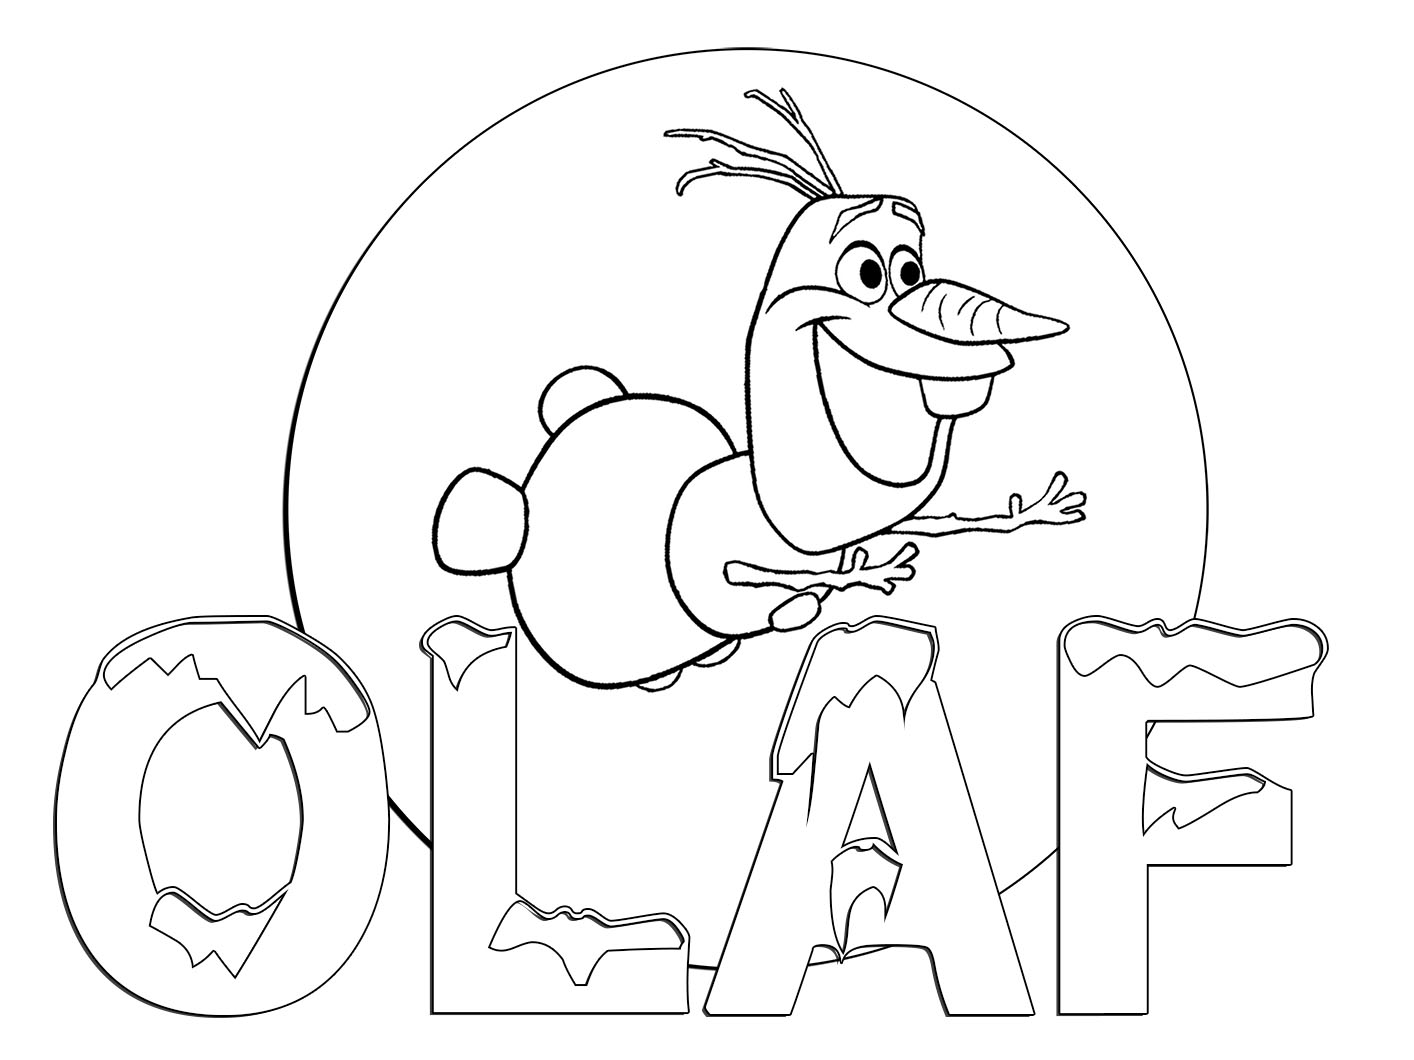 free kid coloring book pages - photo#6